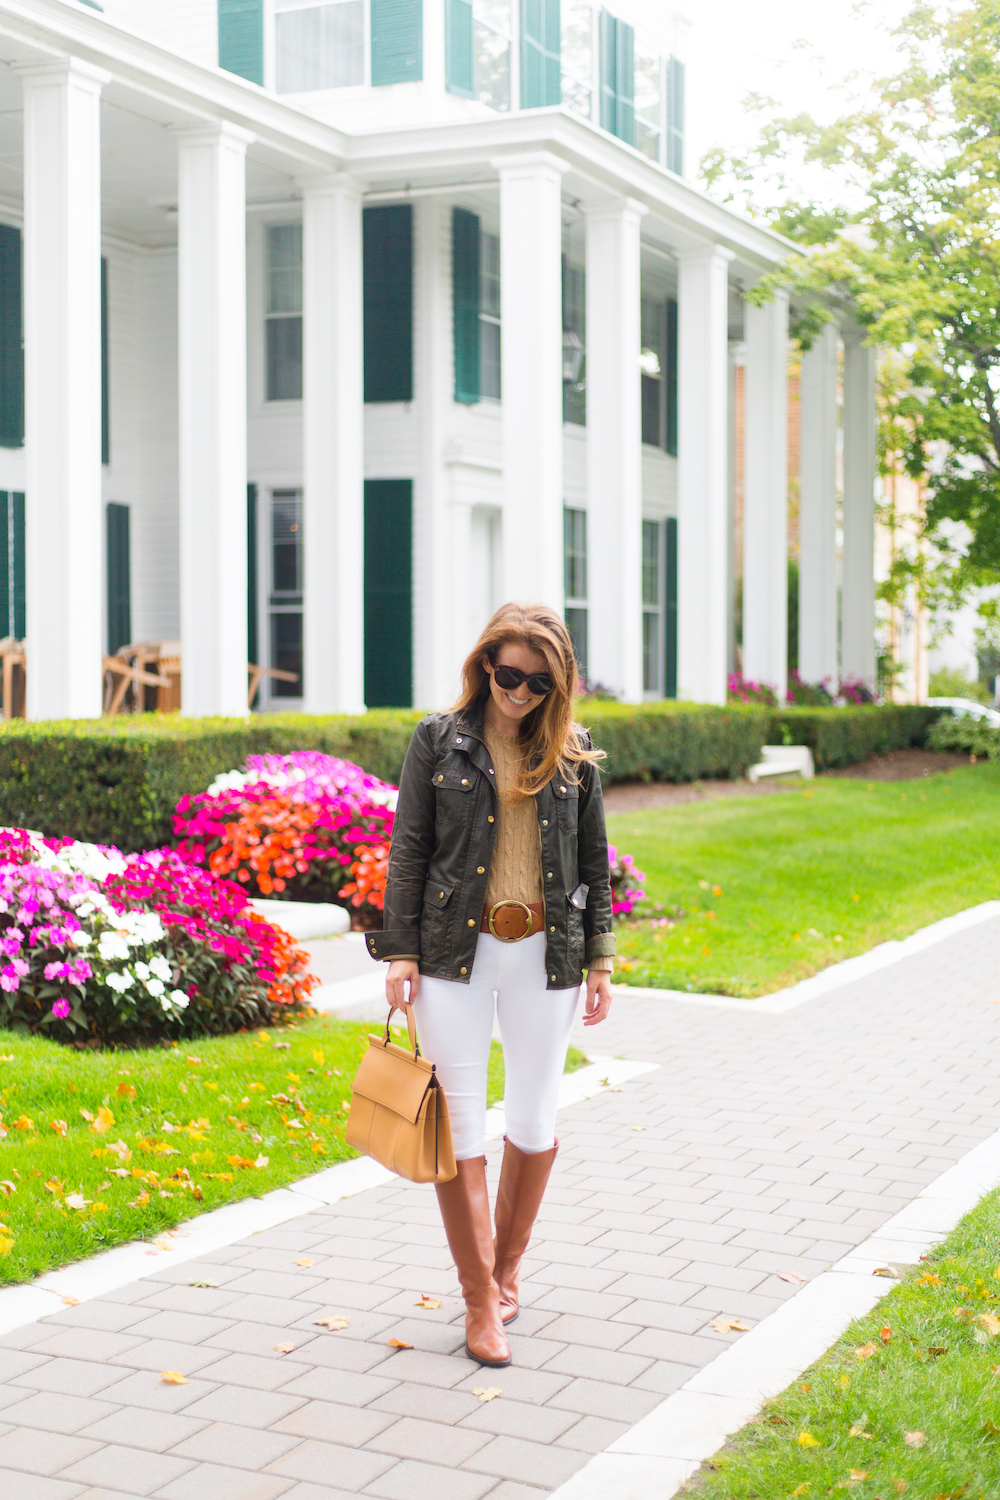 j.crew downtown field jacket and j.crew leather riding boots with white jeans